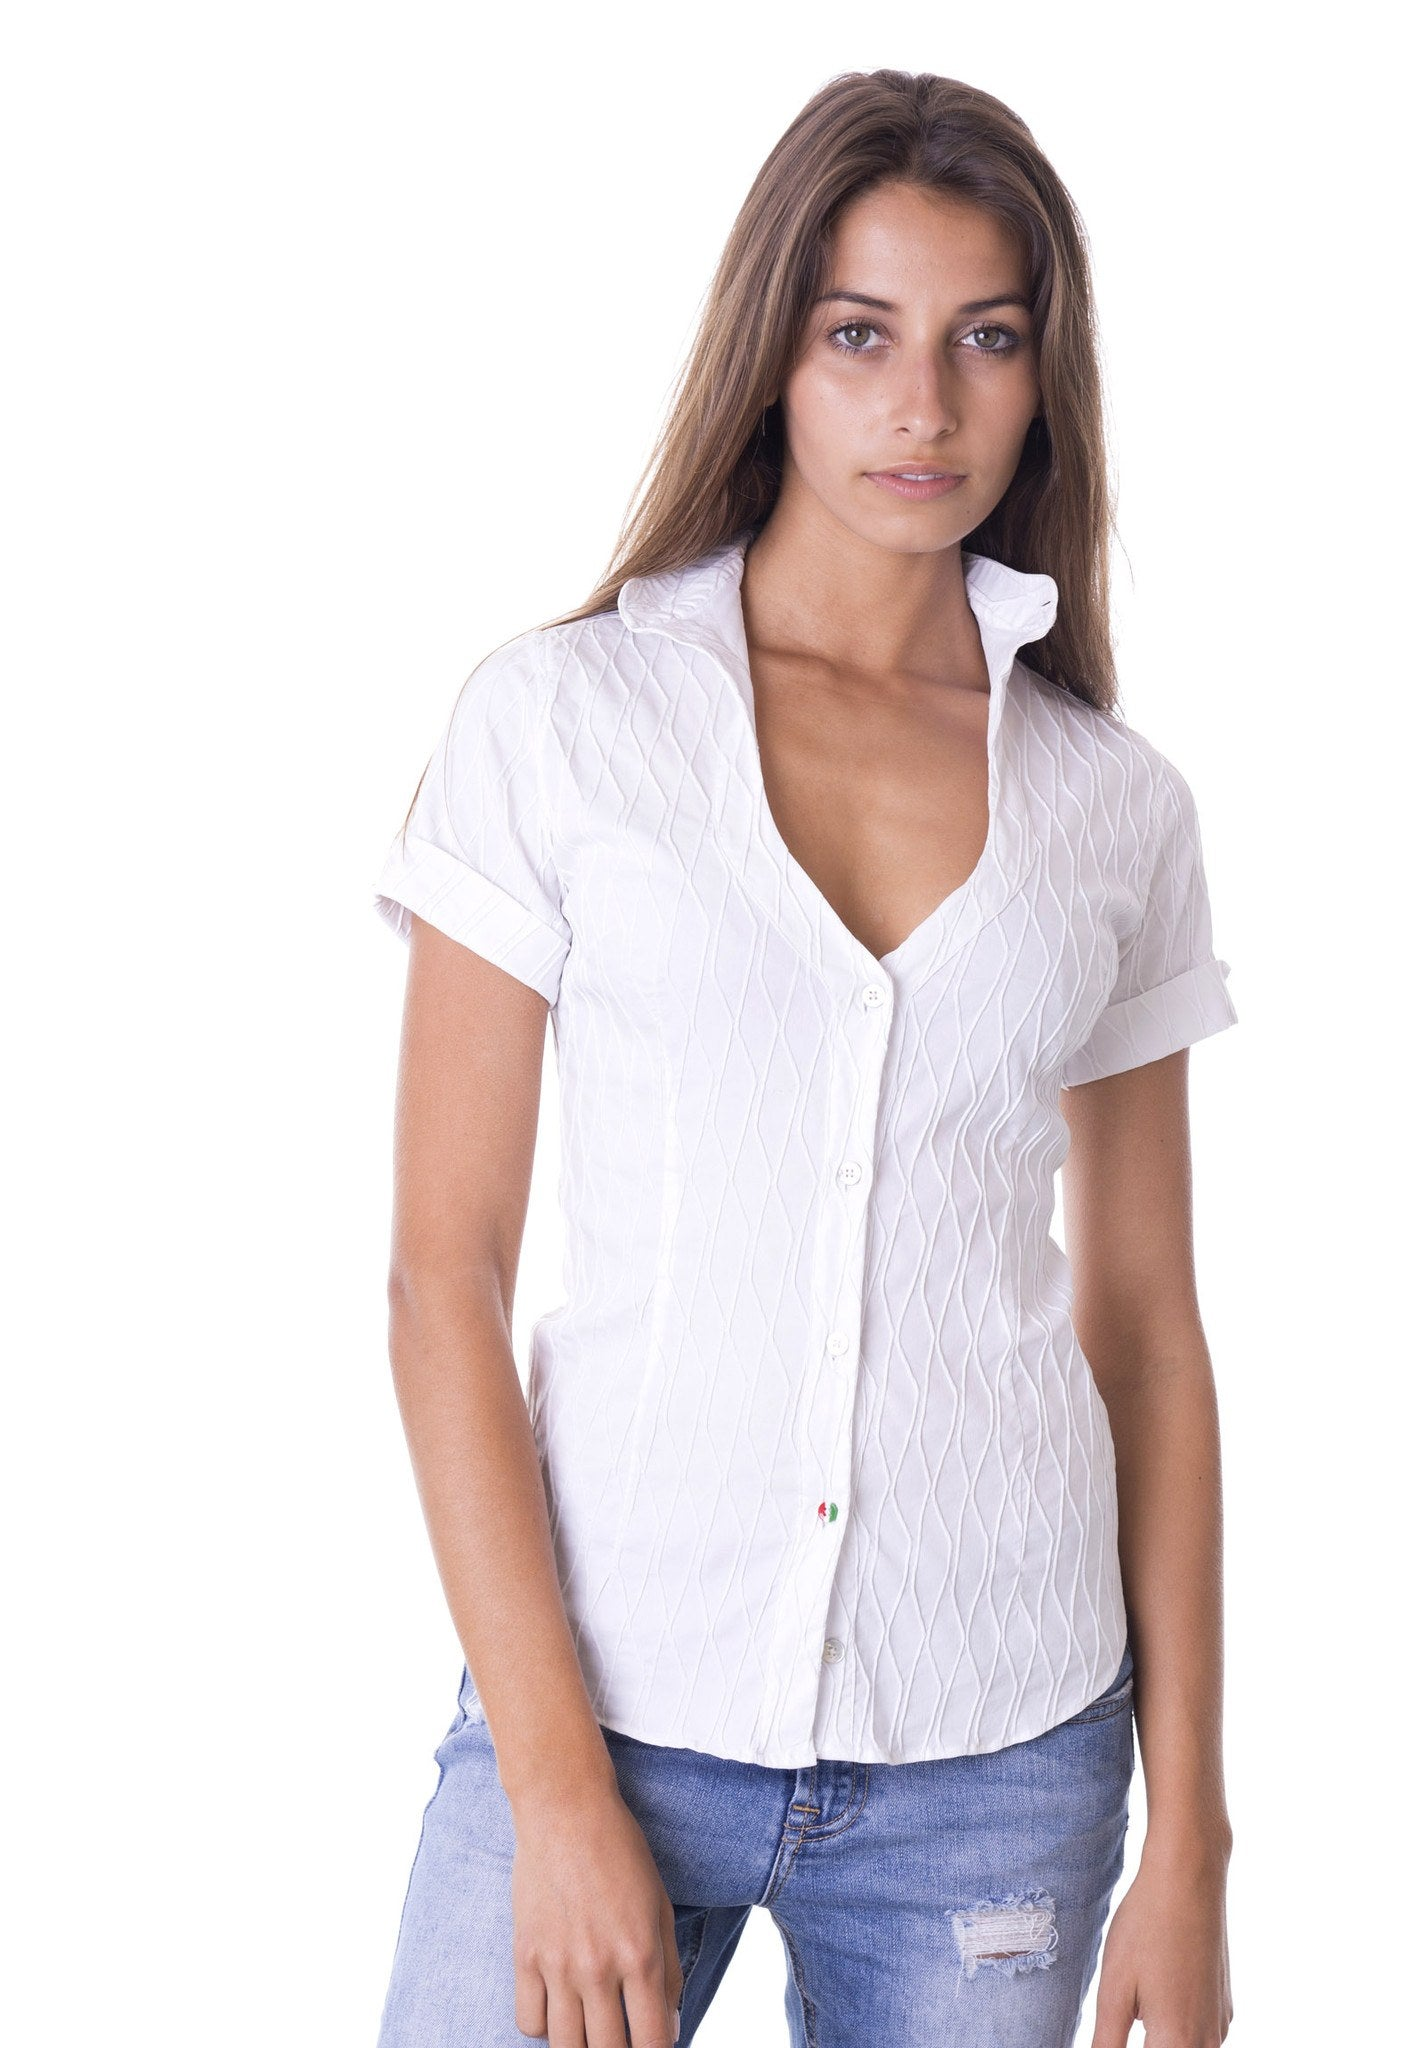 Margherita Diamond low-necked shirt with Swarovski